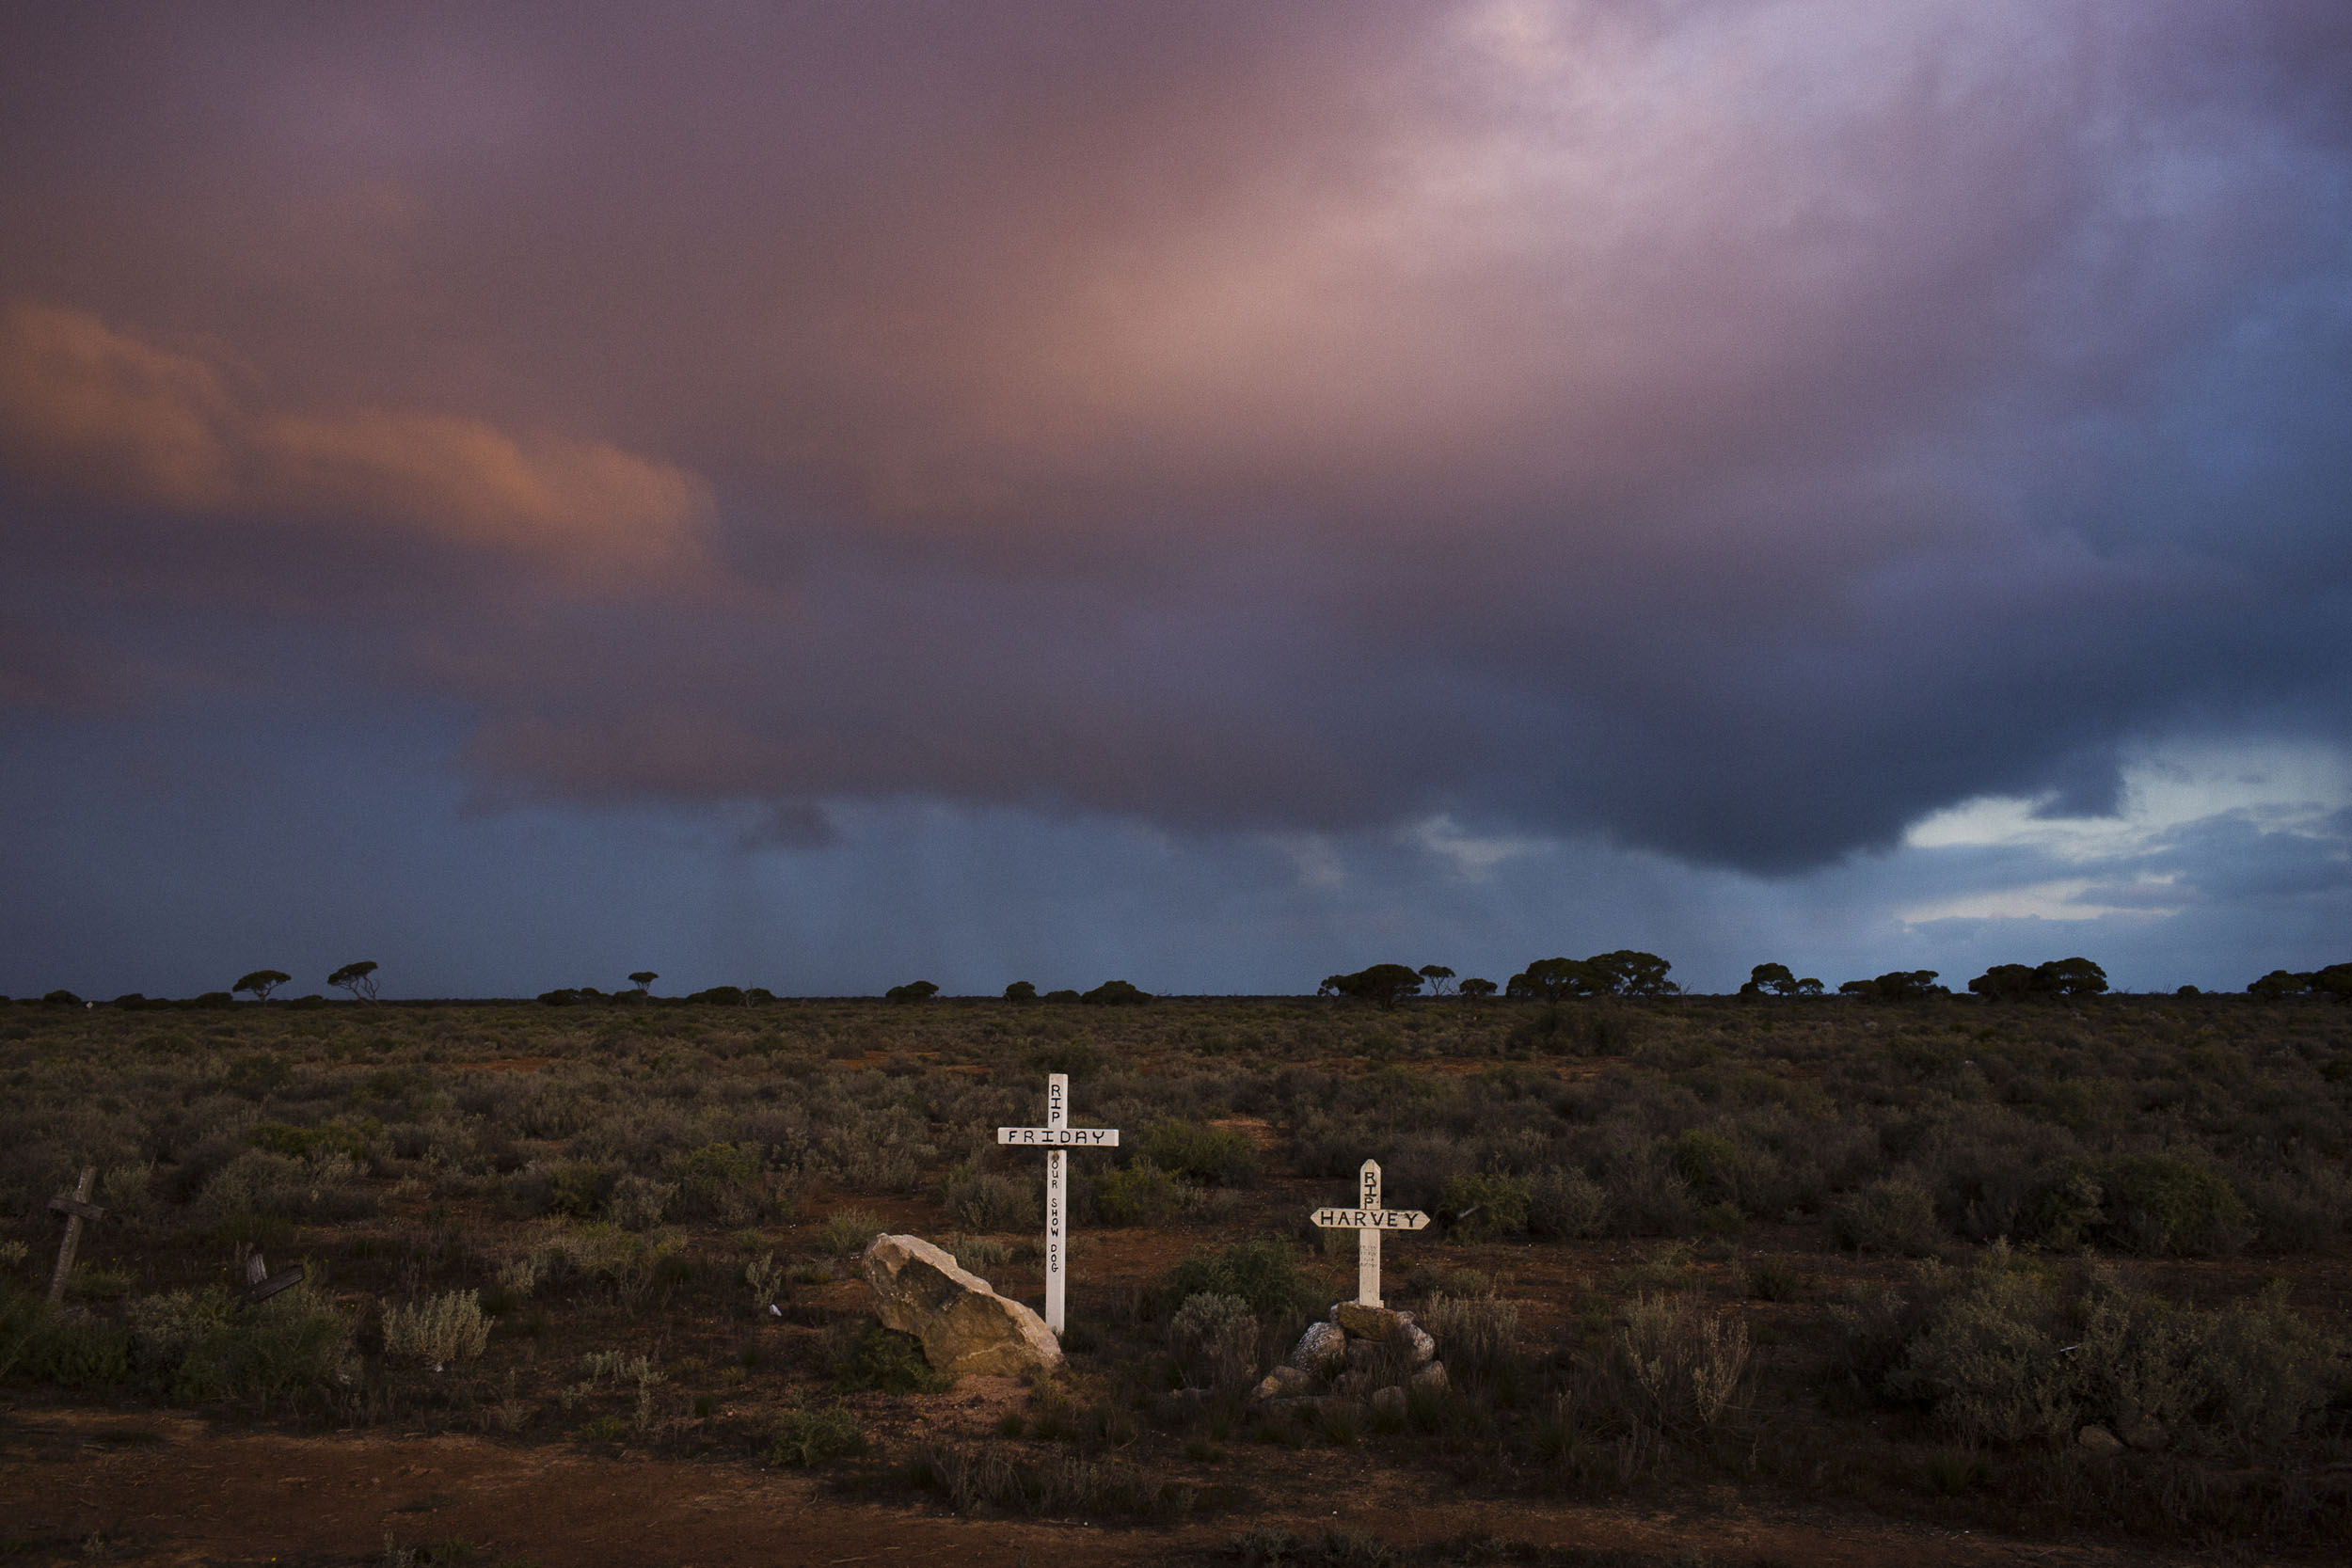 A pet cemetary on the side of the Eyre Highway, Madura, Western Australia.